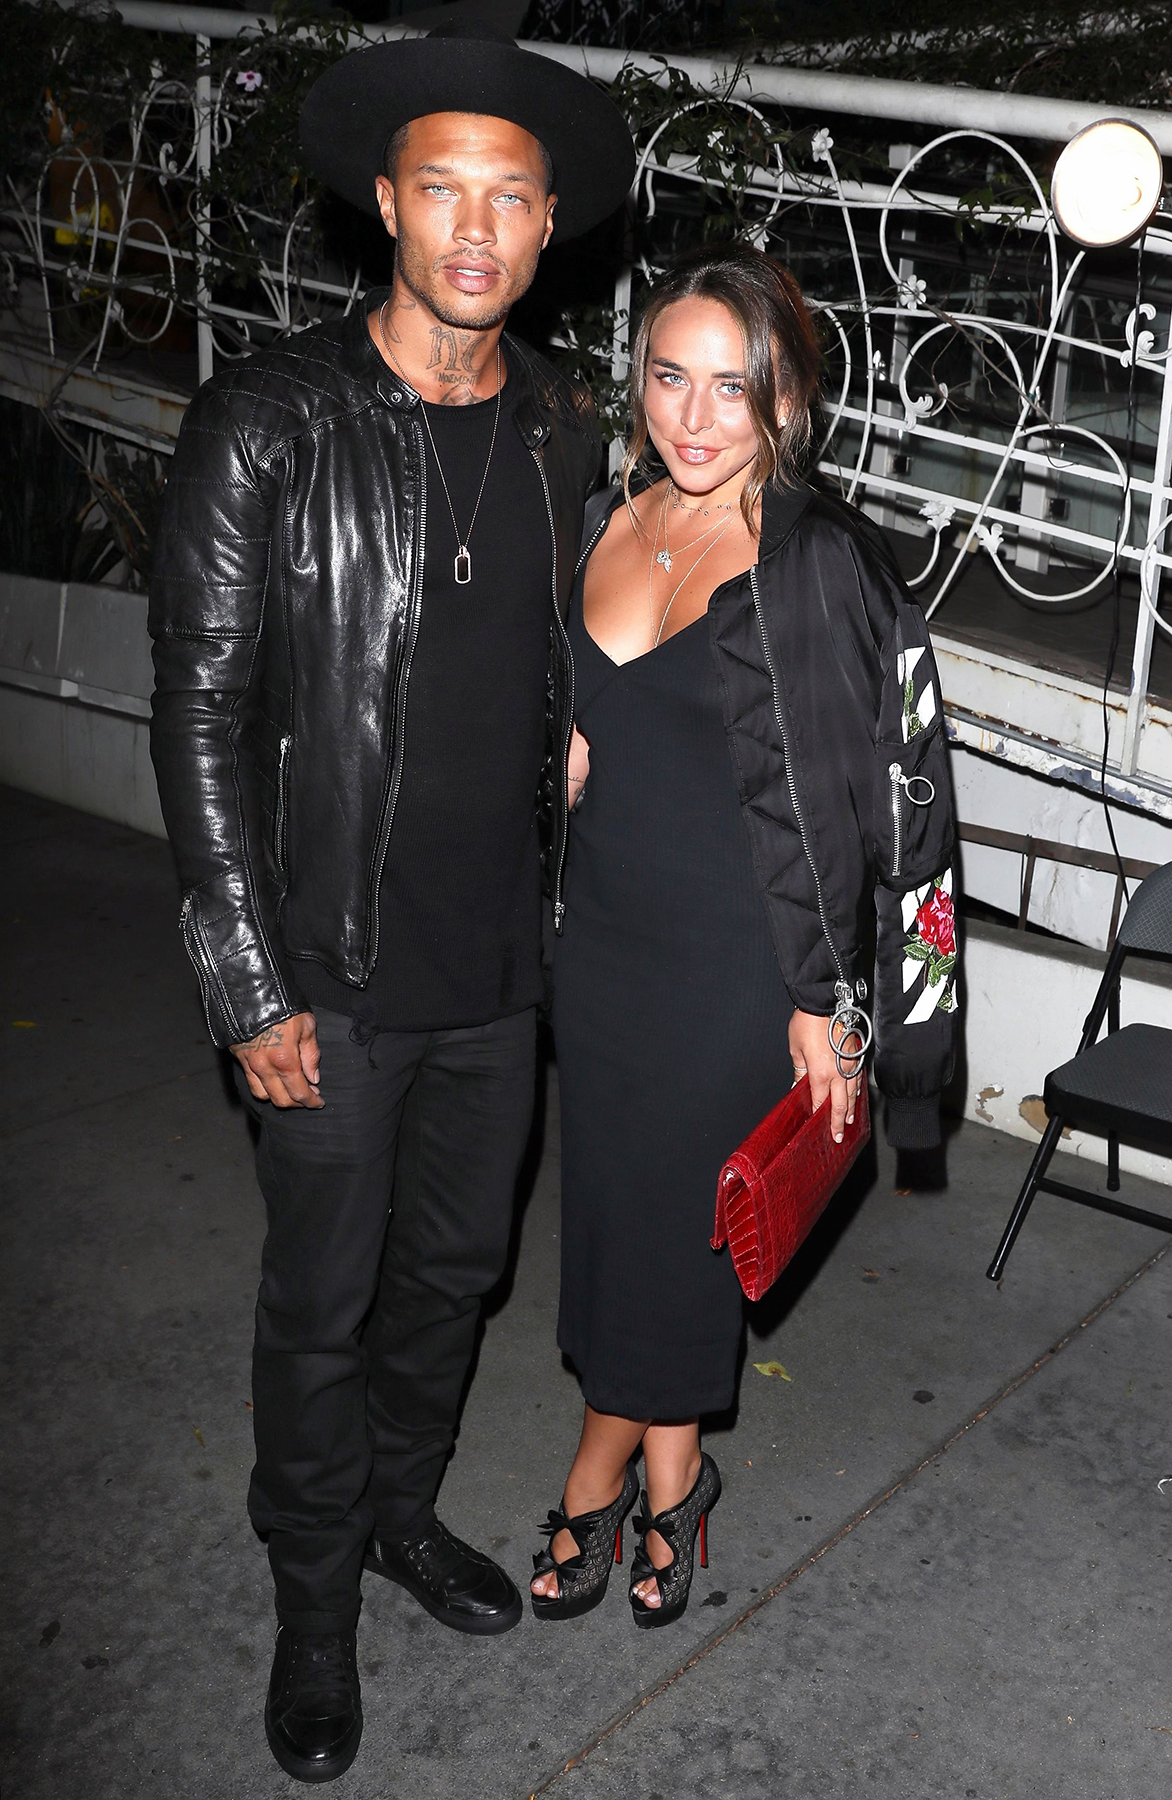 a238b7579c7 Jeremy Meeks and Chloe Green  A Timeline of Their Relationship